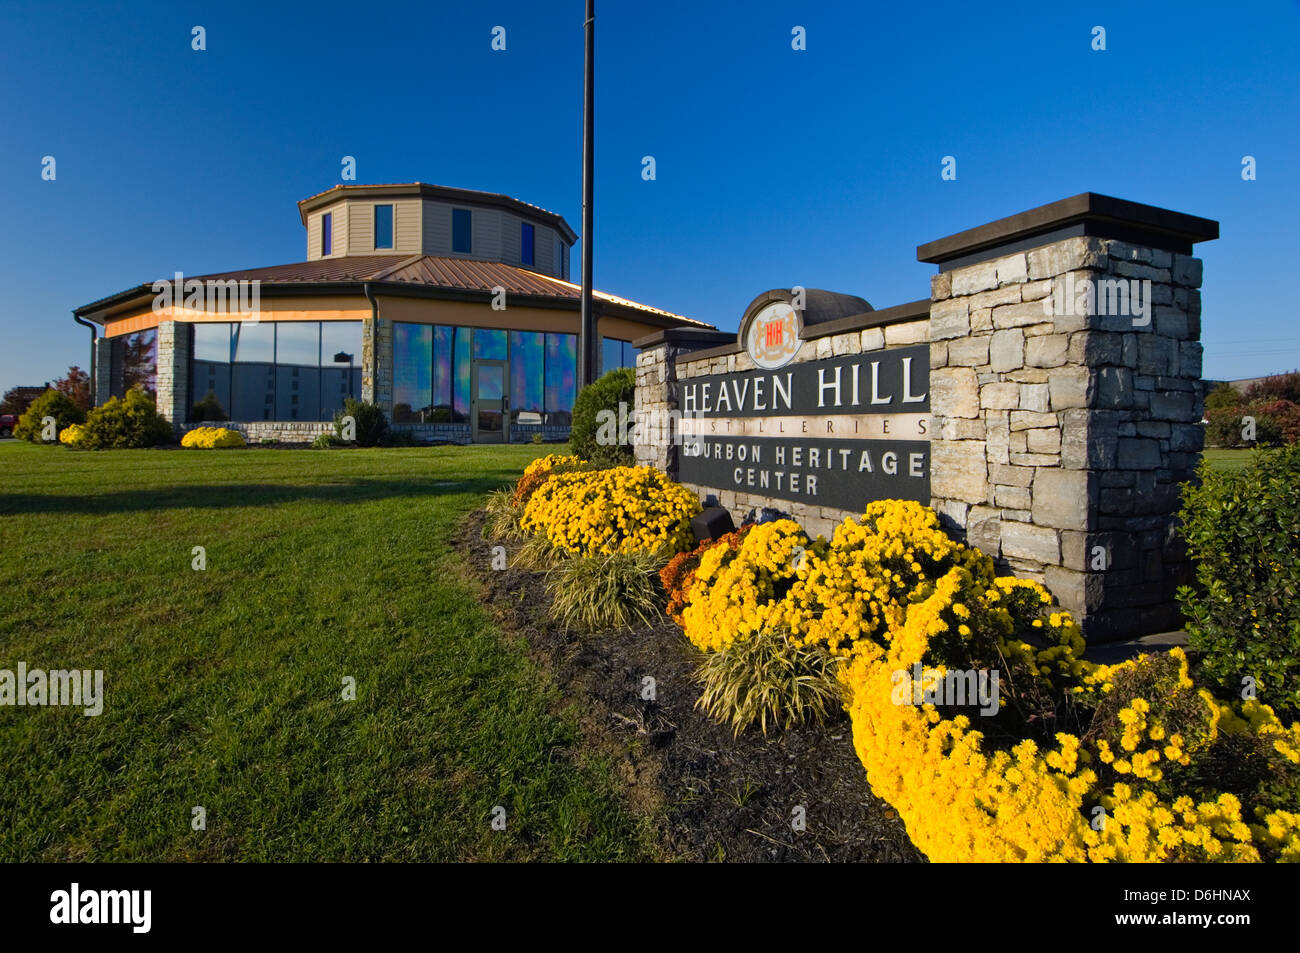 Heaven Hill Distilleries Bourbon Heritage Center In Bardstown Stock Photo 55708994 Alamy